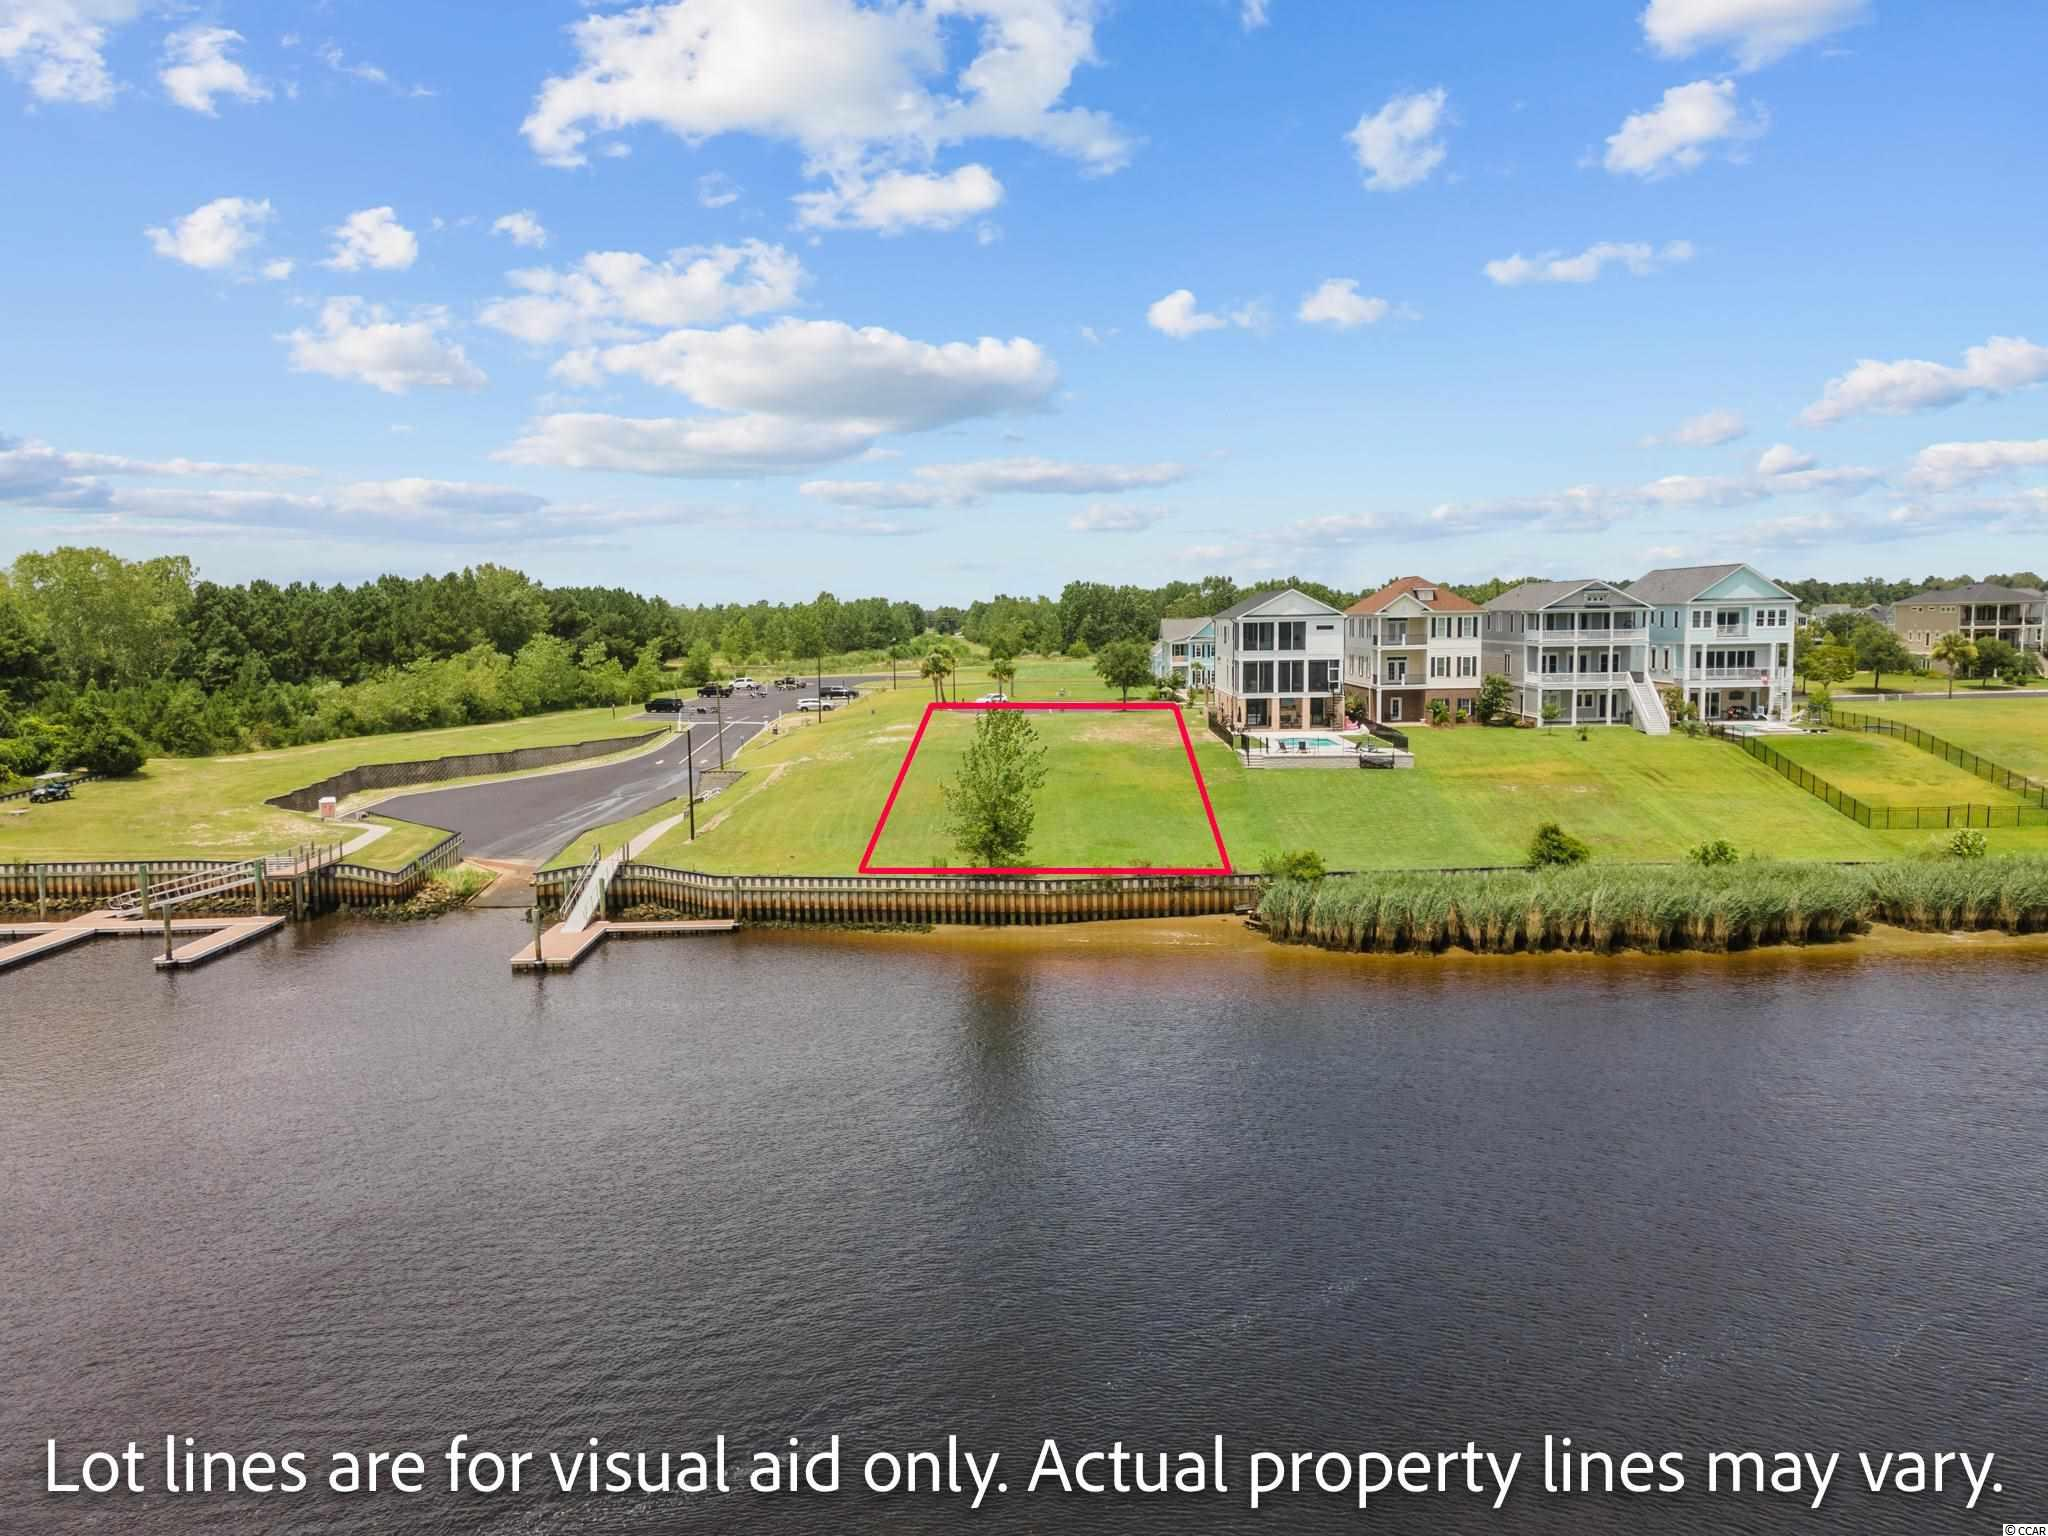 Build your dream home and enjoy waterway living at its best! Wake up every morning with beautiful views of the waterway and sail boats passing by. This lot is the last lot in the neighborhood, so you will have unobstructed south views and easy access to the neighborhood boat ramp and extra parking.  No time frame to build and bring your own builder. Waterway Palms Plantation is one of Myrtle Beach's premier waterway communities offering resort style amenities, planned neighborhood activities for kids, adults and the whole family. Waterway Palms is located in Carolina Forest, one of the best school systems in Horry County.